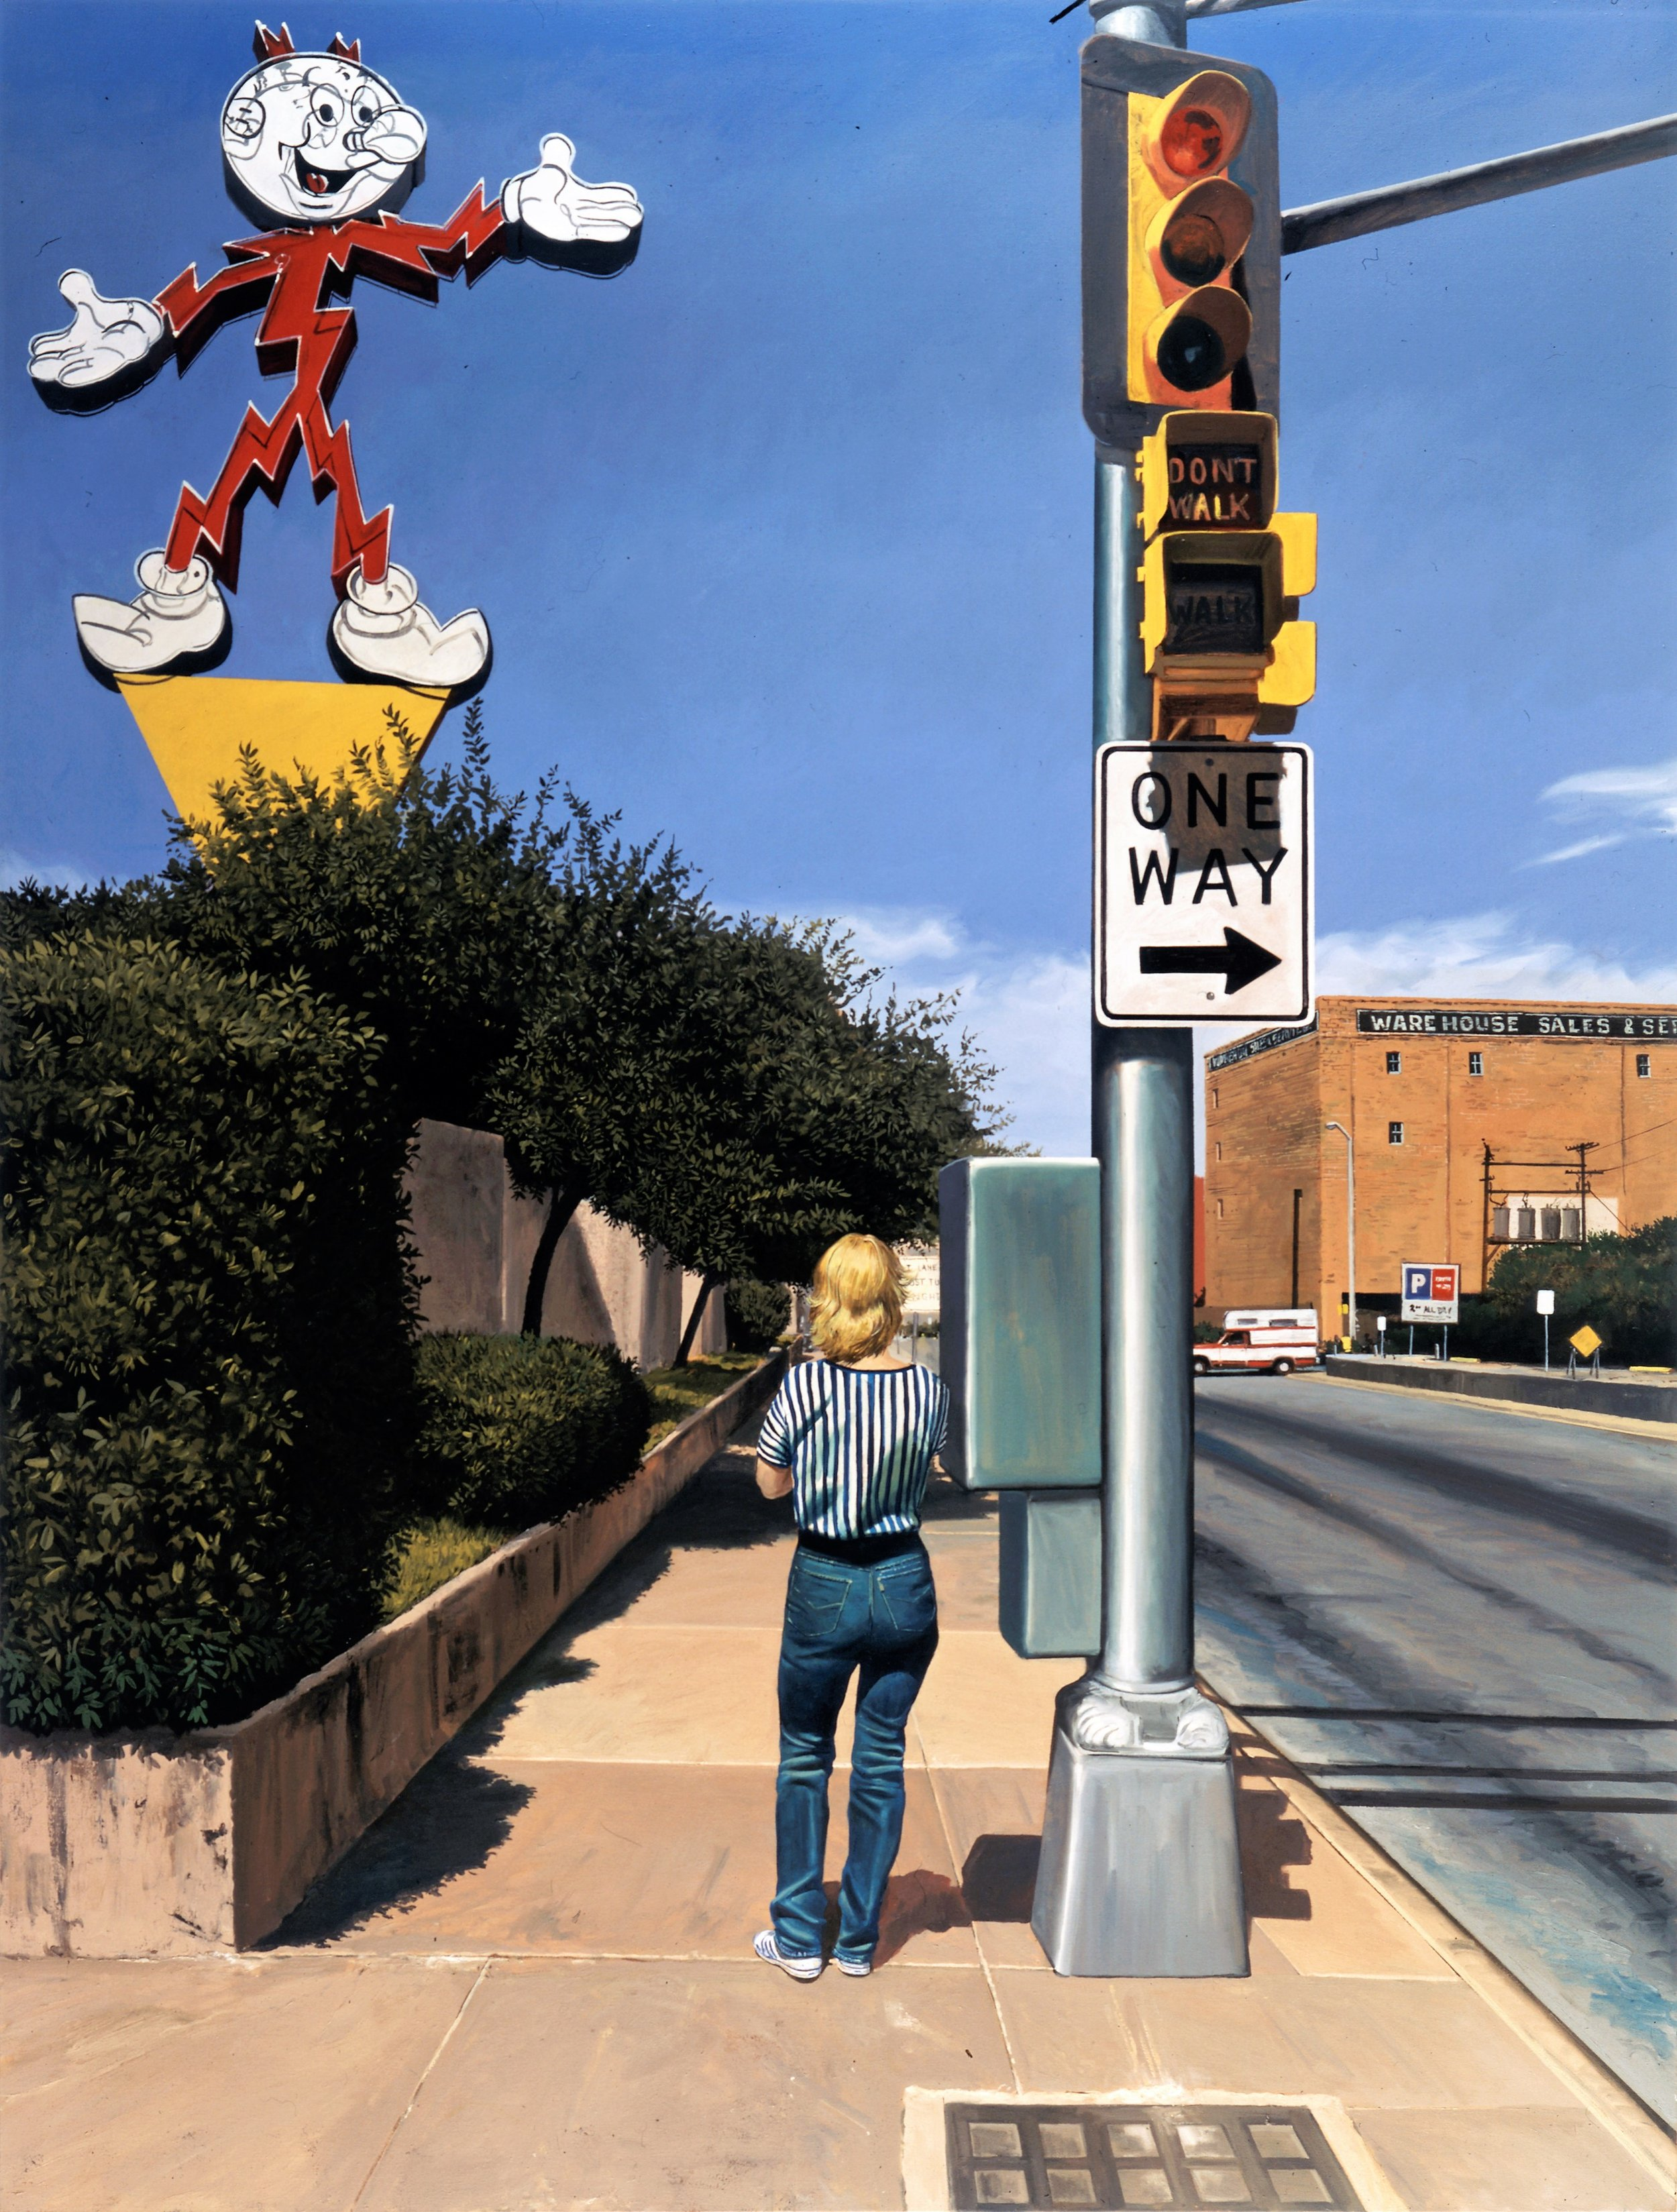 Daniel Blagg,  Bus Stop #1,  1996, oil on canvas, 80 x 60""